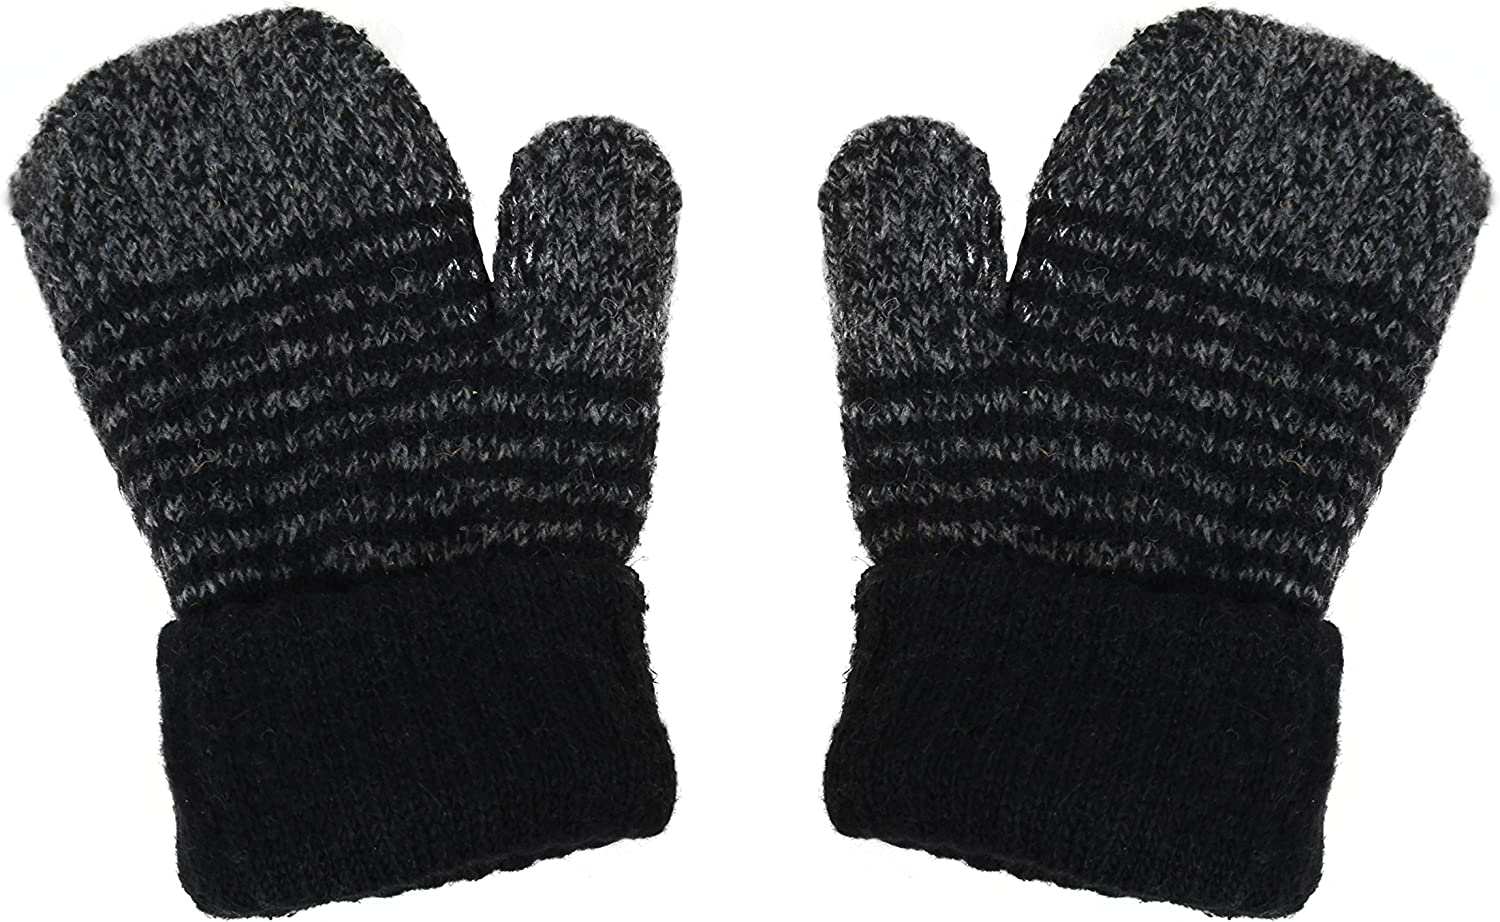 WInter Gift 3 Pairs of Womens Knitted Fingerless Gloves With Sparkle Thread